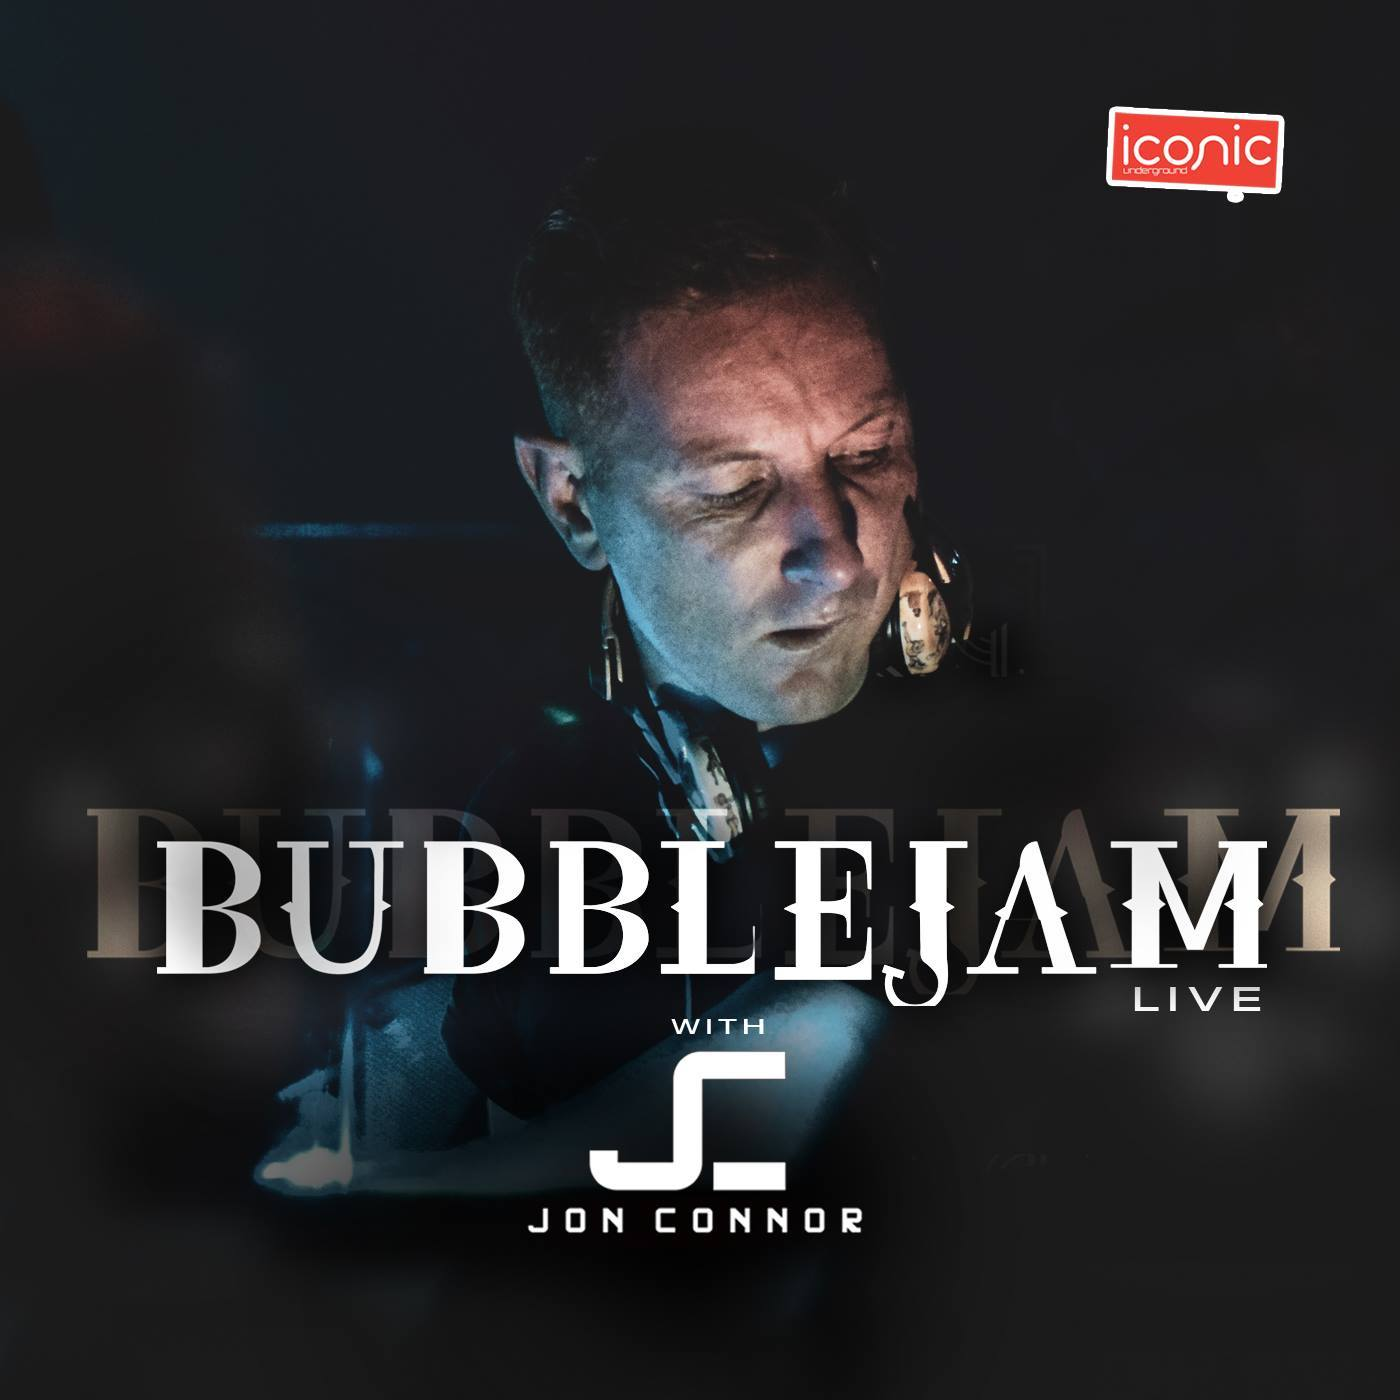 Jon Connor – Bubblejam Live Volume 4 Podcast – Iconic Exclusive